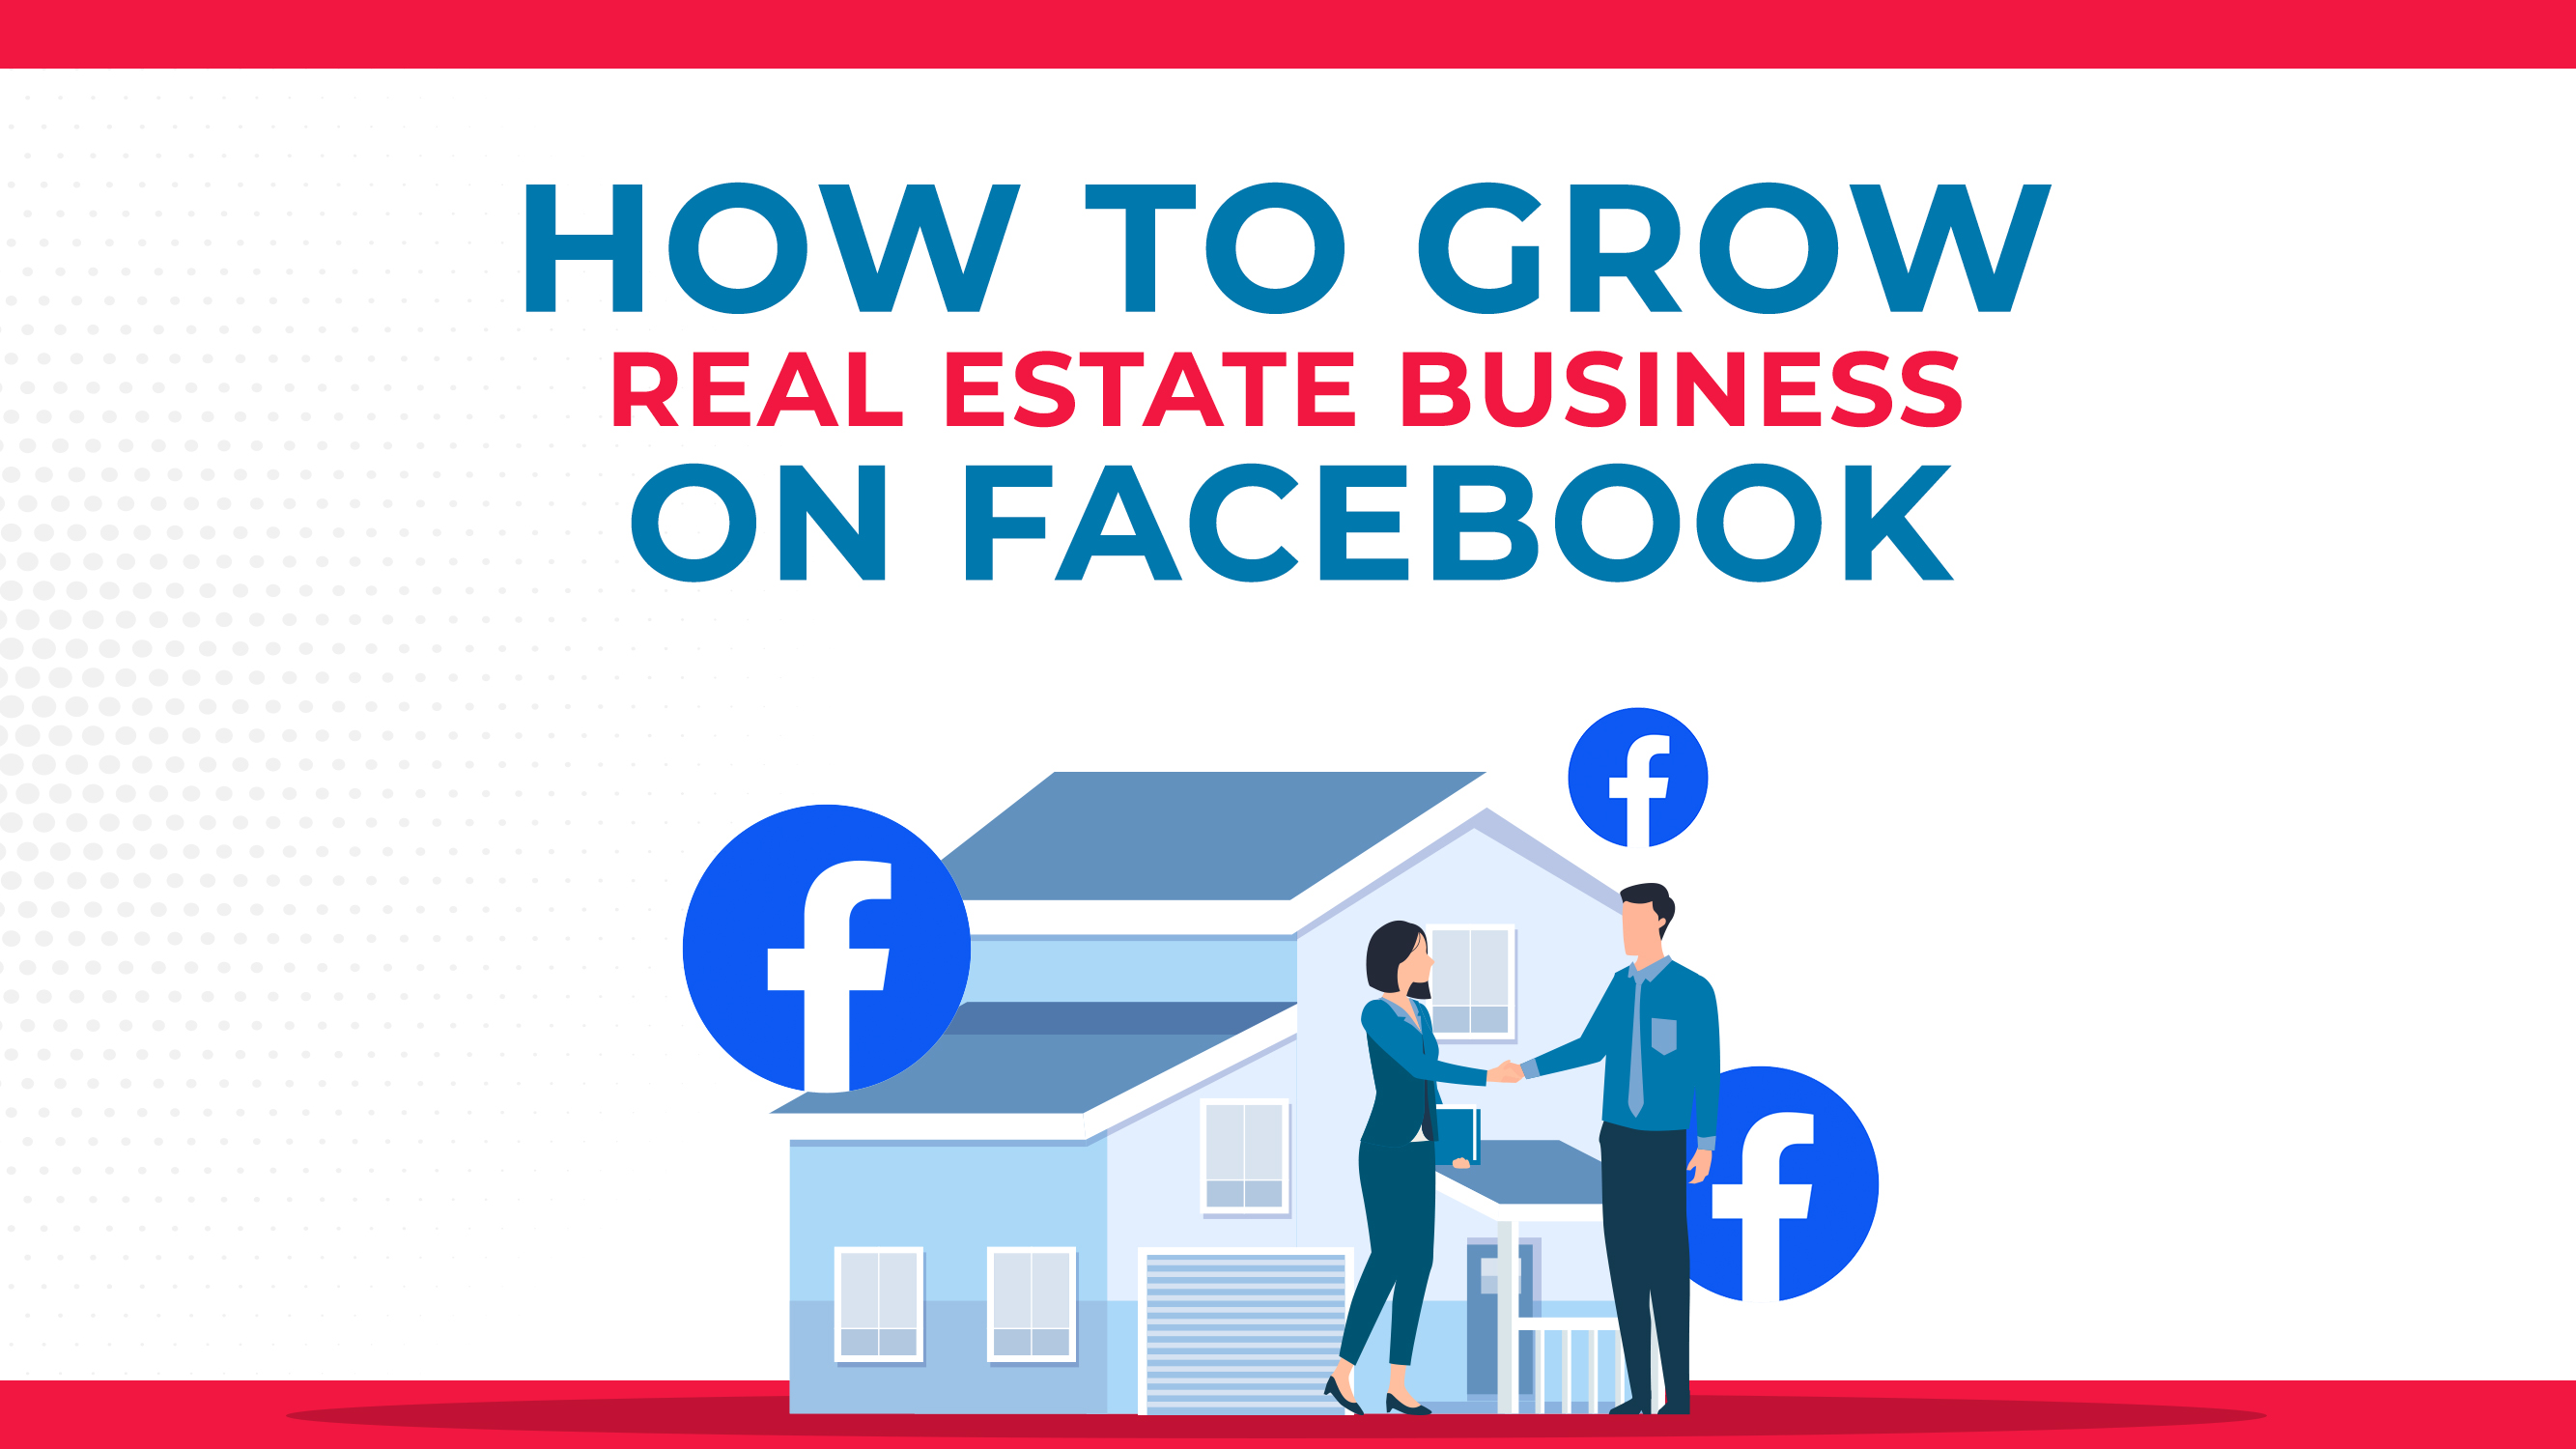 How To Grow Your Real Estate Business On Facebook